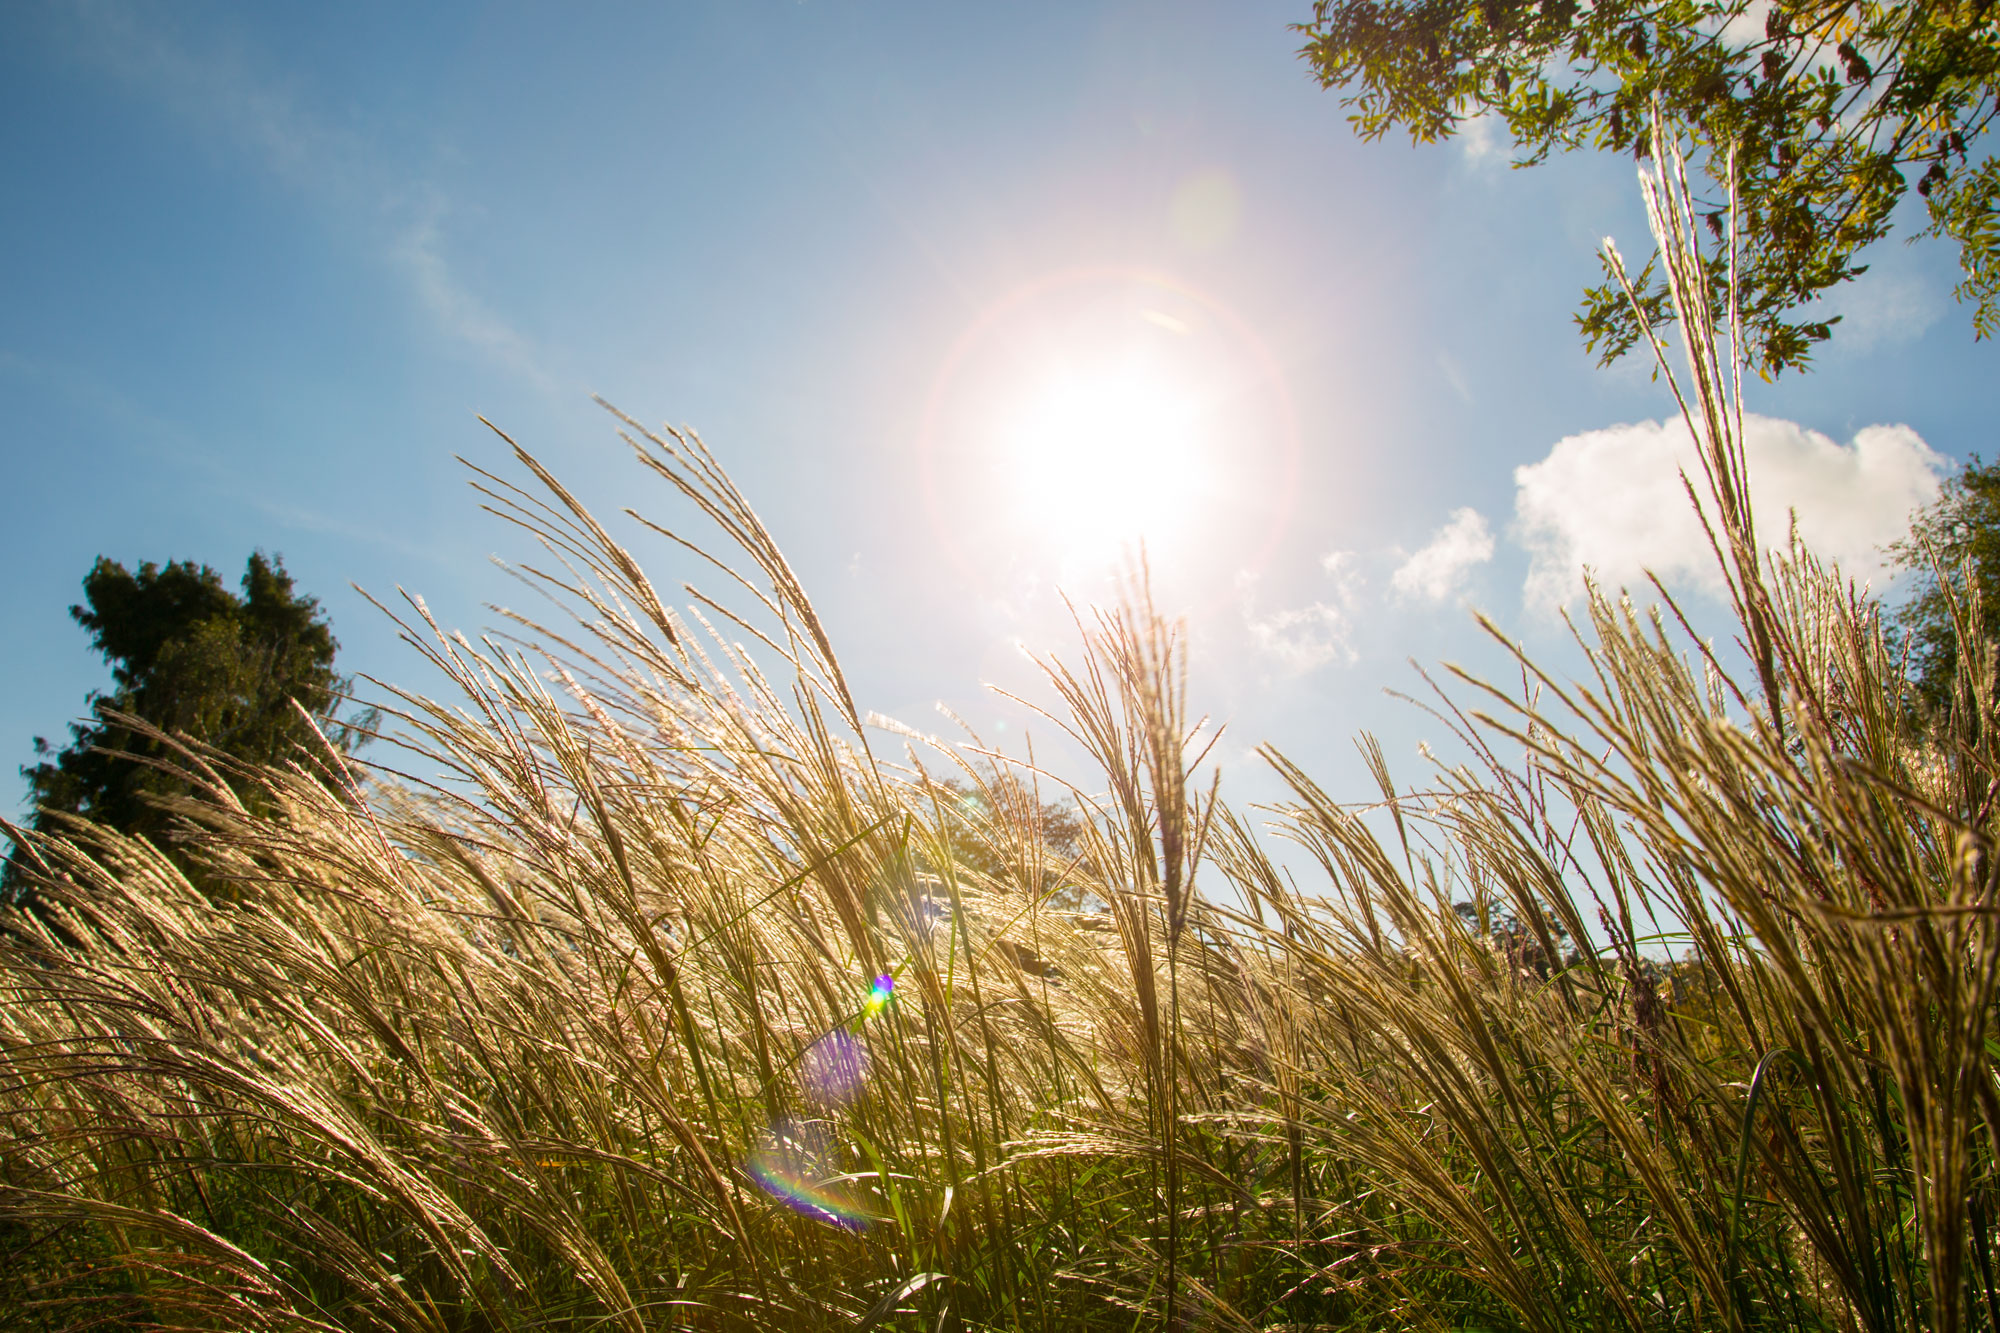 The tops of grasses are golden fronds, blowing in a breeze. Behind them is a blue sky and bright sun.